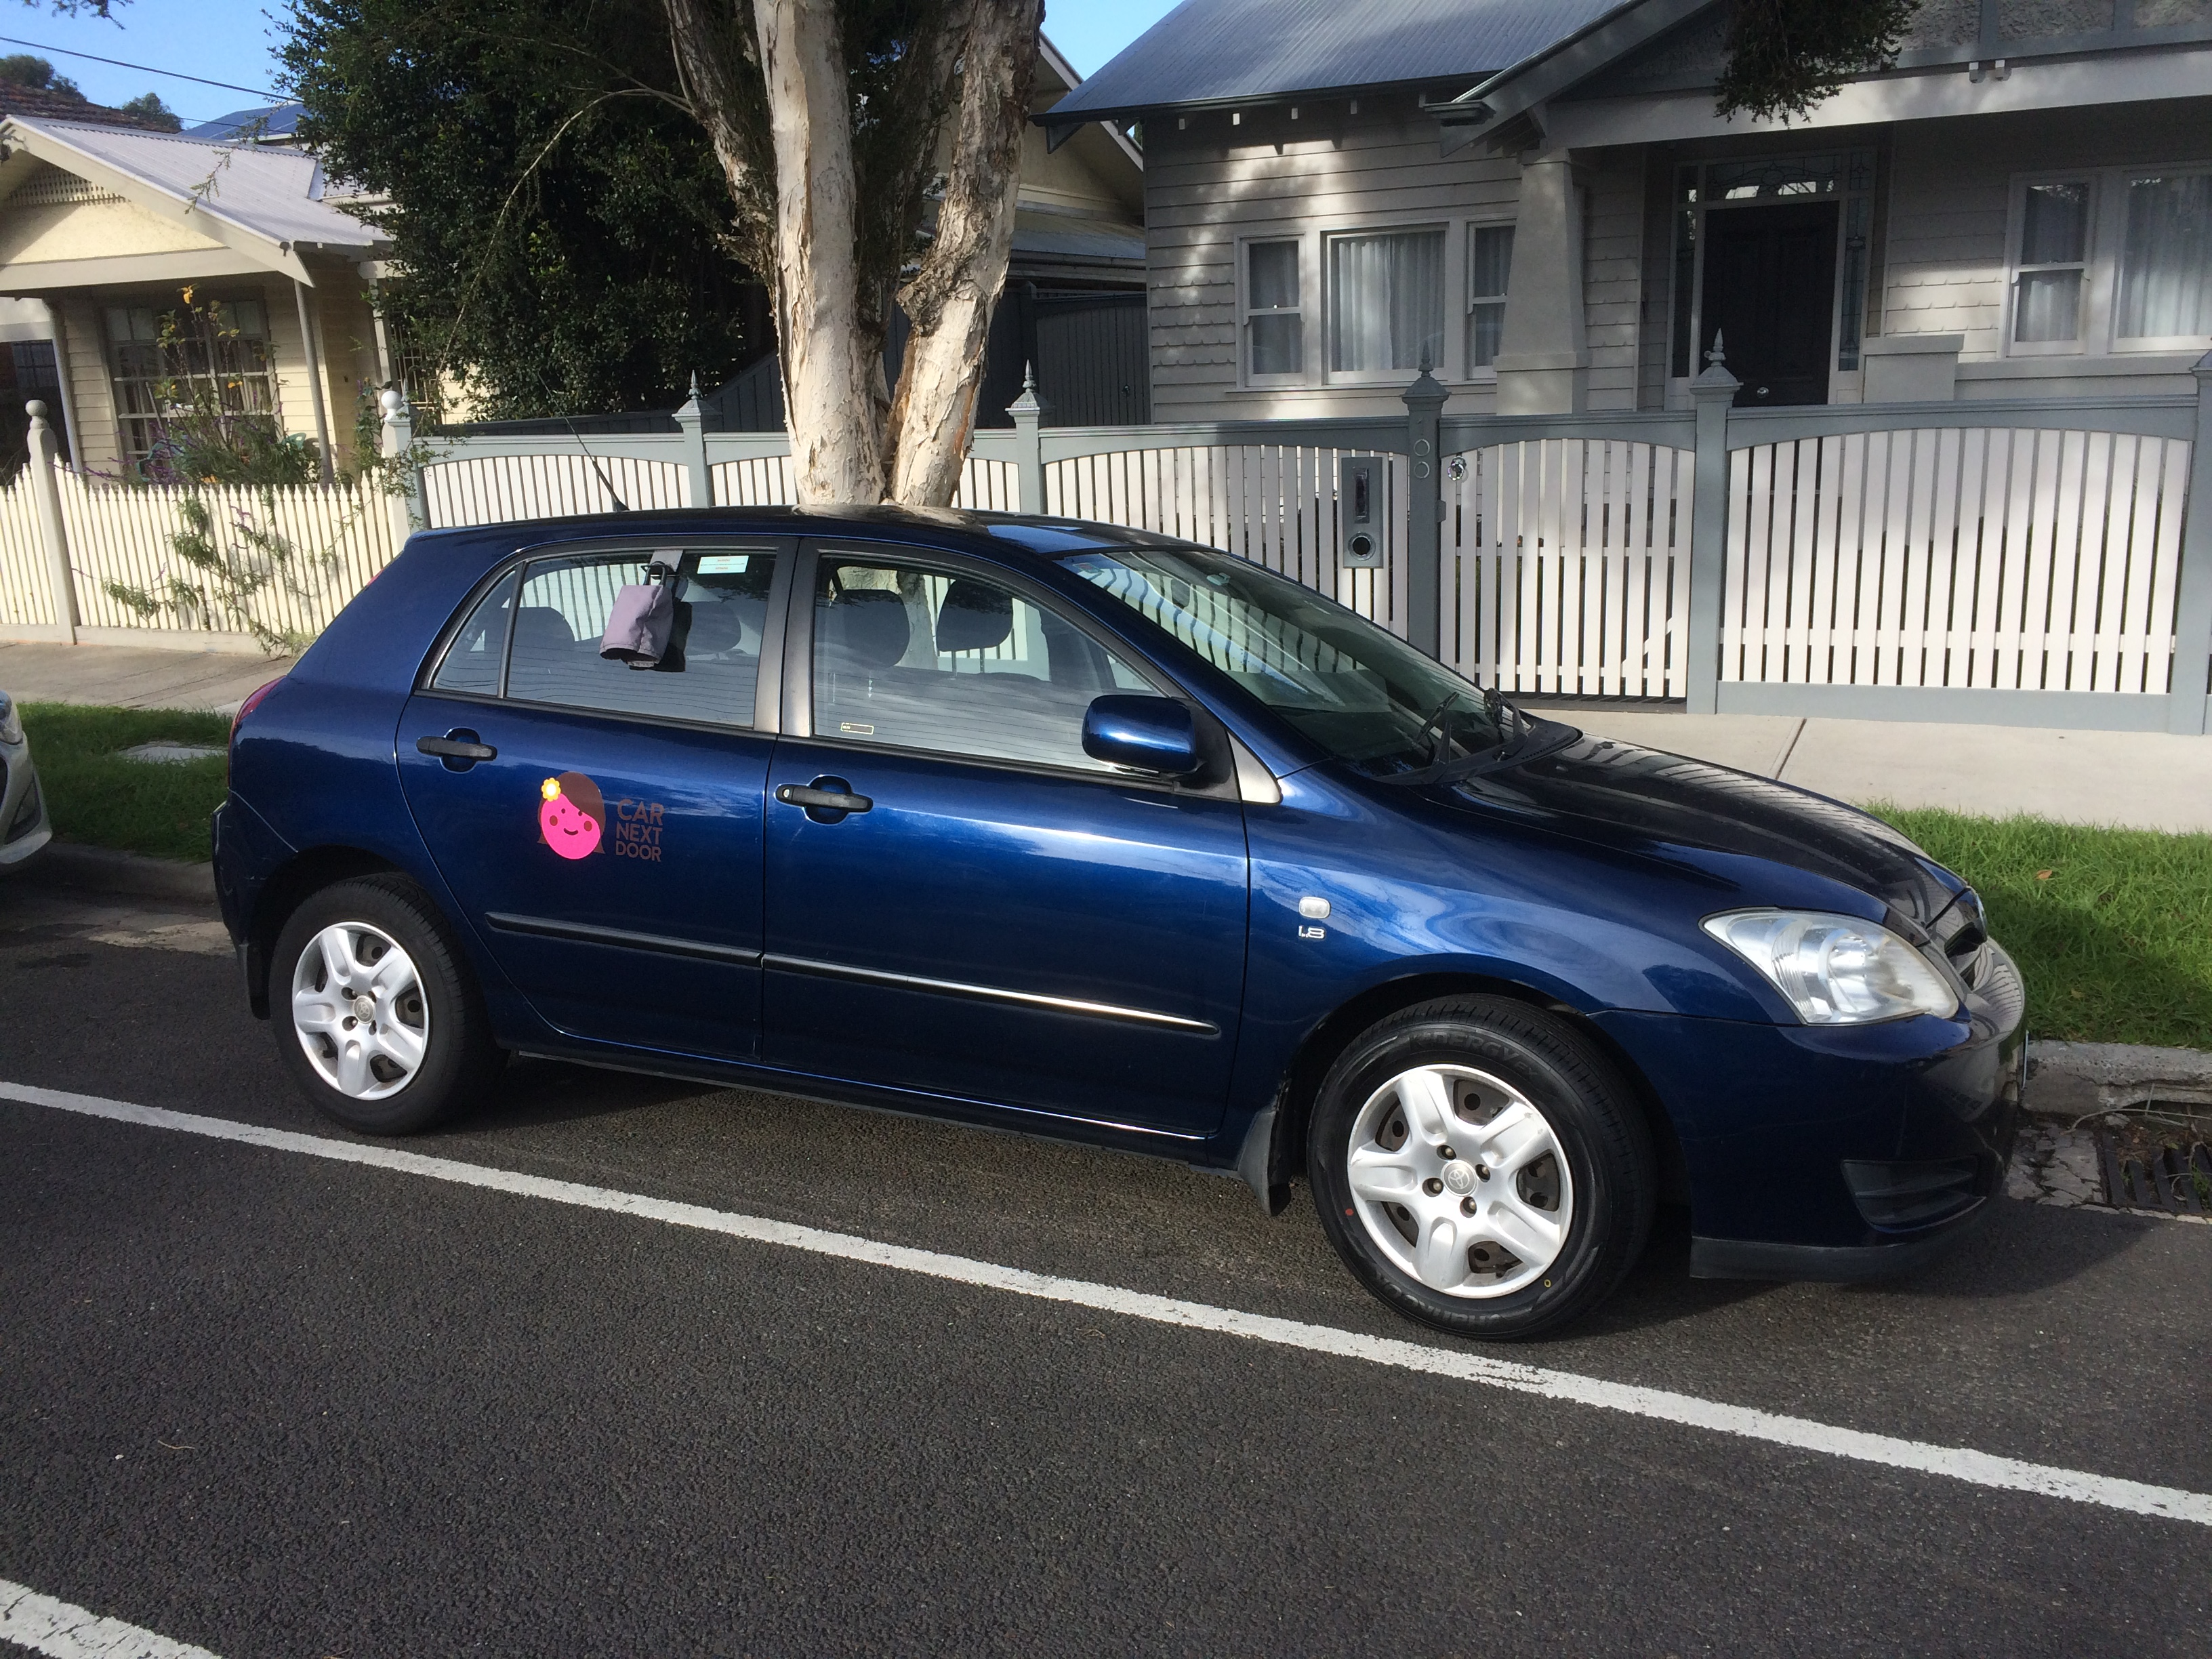 Picture of Mesha's 2006 Toyota Corolla Ascent Hatchback